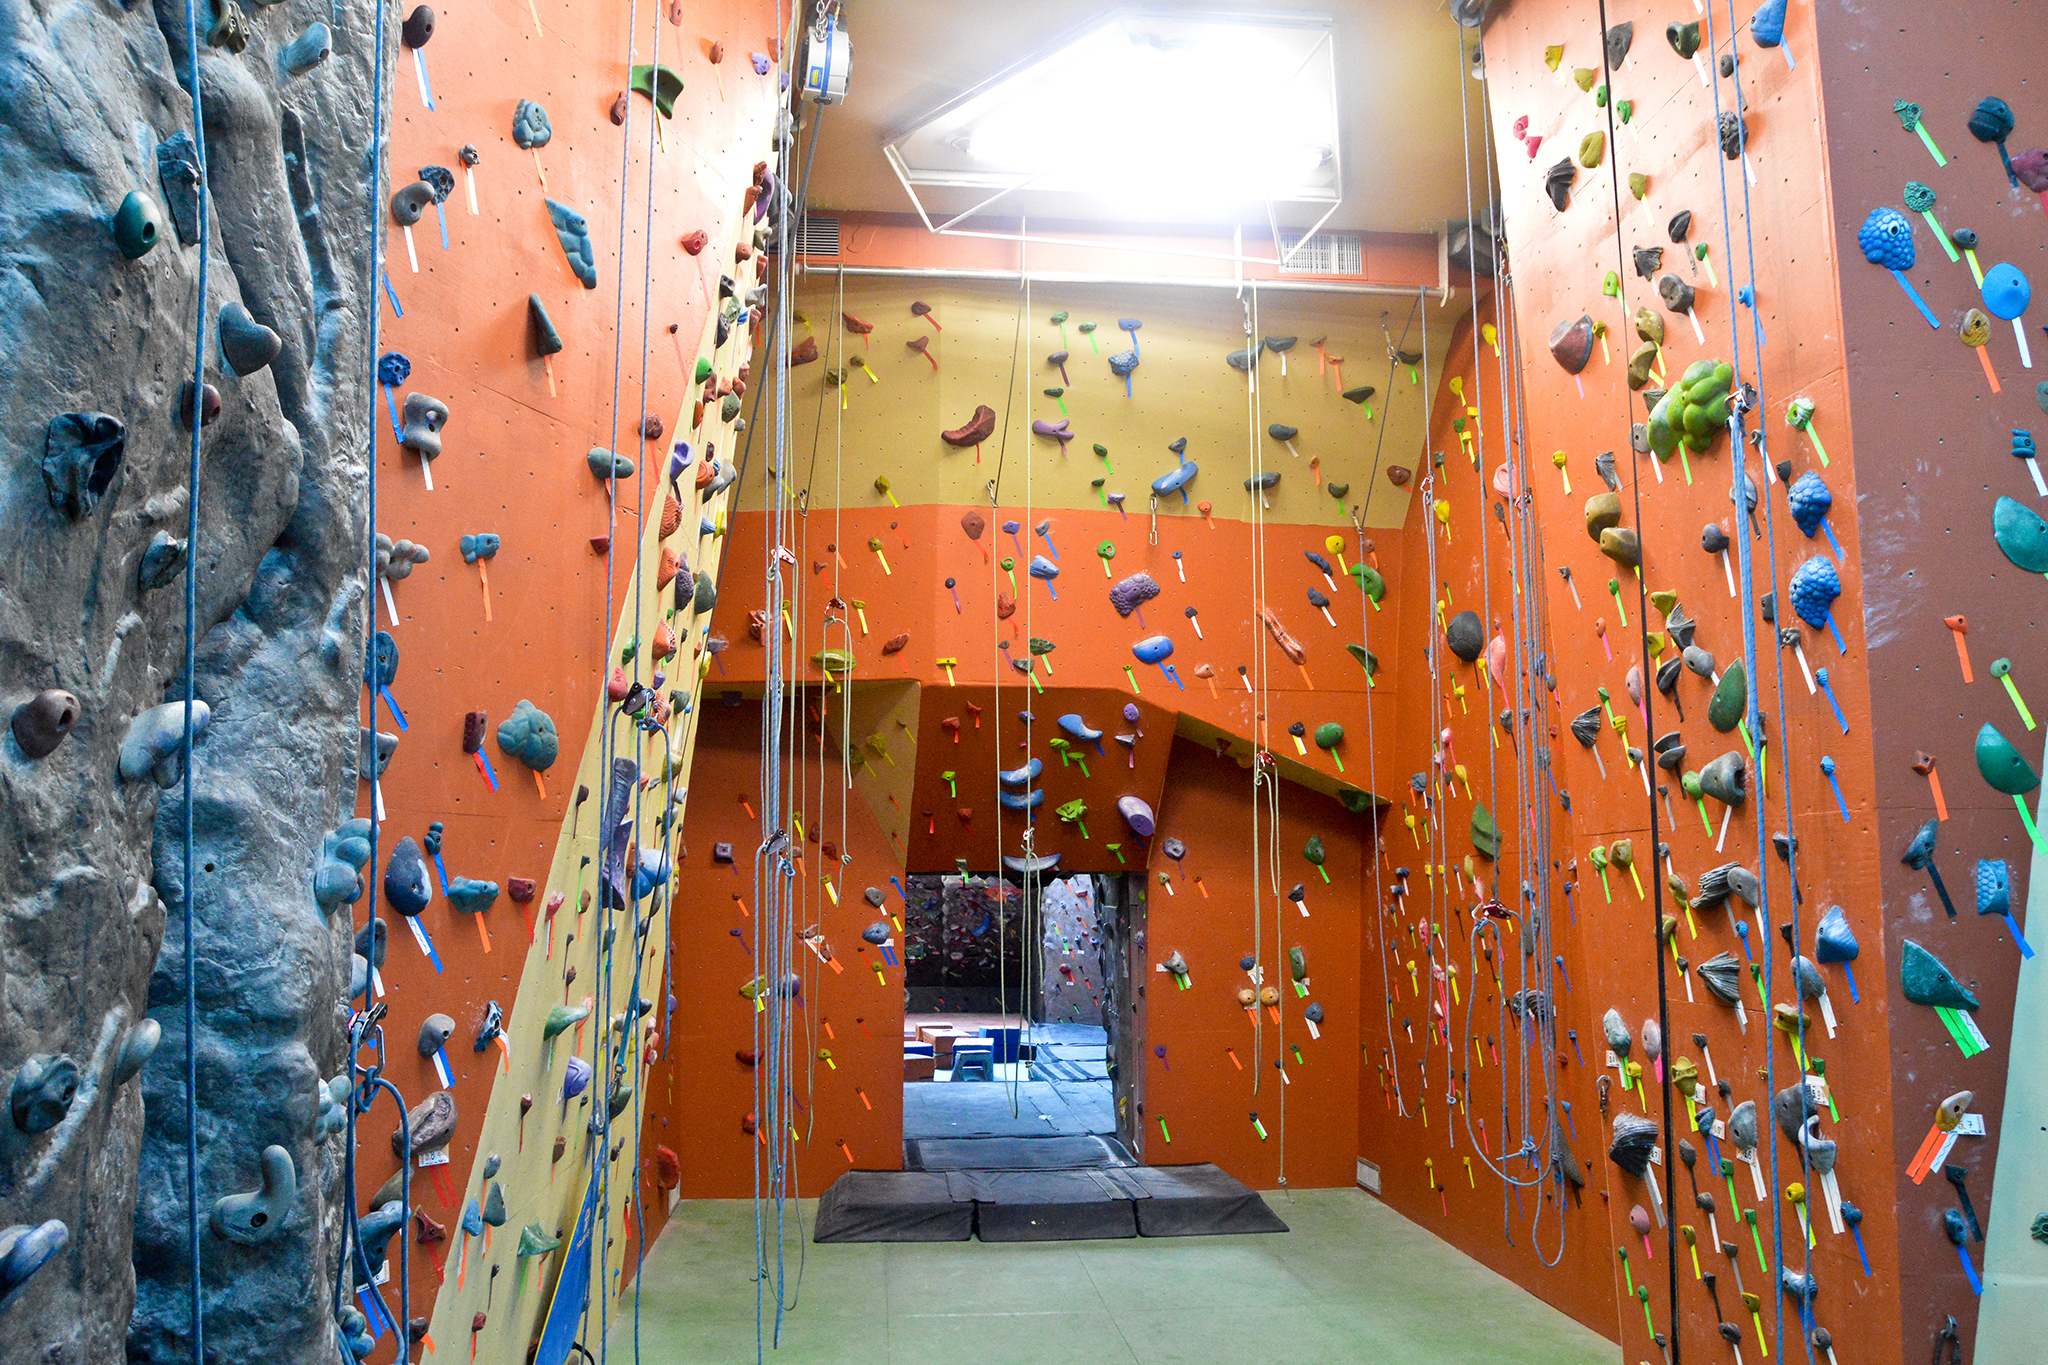 Best places to go outdoor or indoor rock climbing in nyc for Best places to visit in nyc with kids